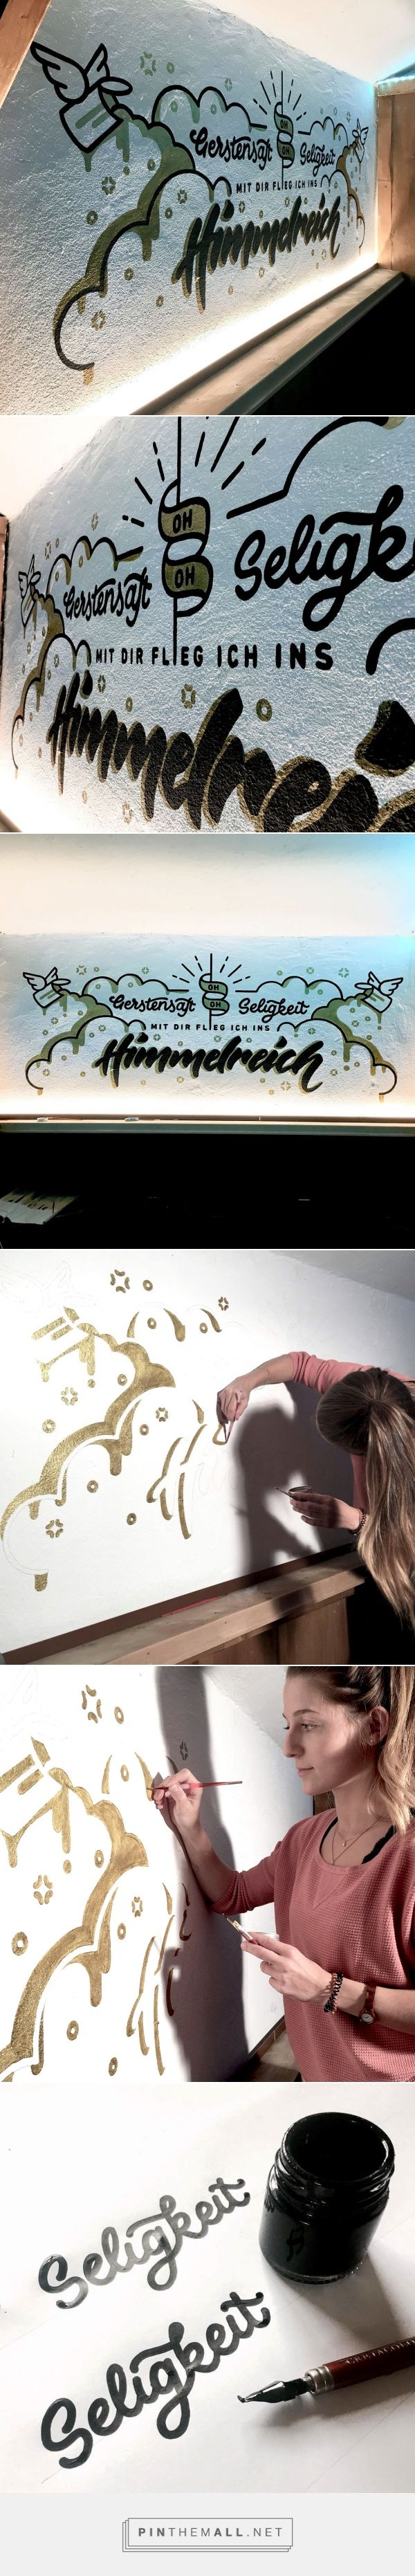 Beer-themed Wall Art combining lettering and illustration. Drawn with metallic effect gold wall paint. - created via https://pinthemall.net